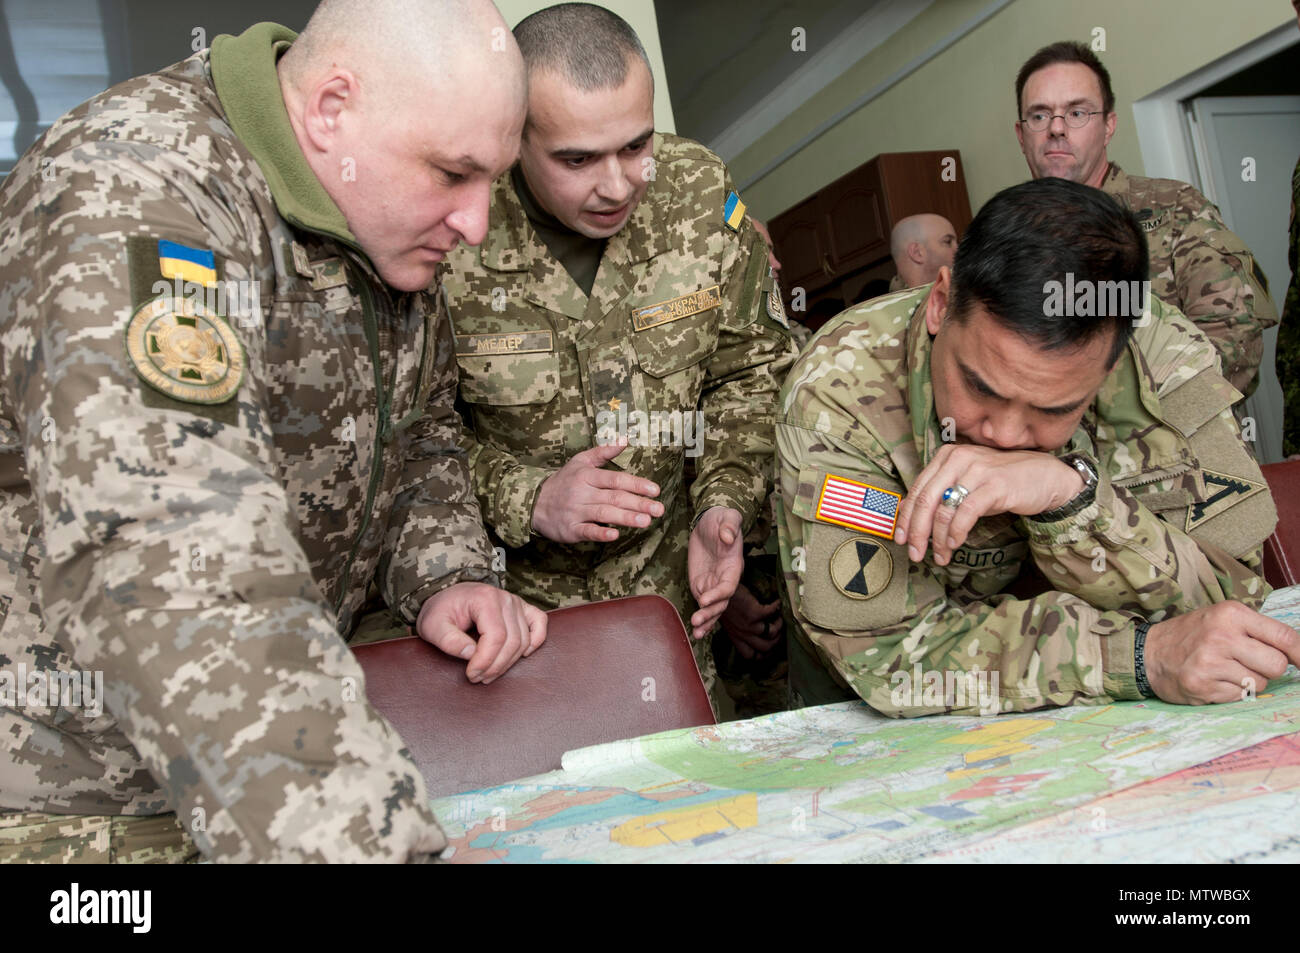 Brig. Gen. Tony Aguto, commander for the 7th Army Training Command, reviews engineering plans for the International Peacekeeping and Security Center, Near Yavoriv, Ukraine, with IPSC Commander Ukrainian army Col. Igor Slisarchuk, ISPC commander (left), and Ukrainian army Maj. Oleg Meder, IPSC range officer (center), at the IPSC range operations facility on Jan. 28. (Photo by Sgt. Anthony Jones, 45th Infantry Brigade Combat Team) - Stock Image